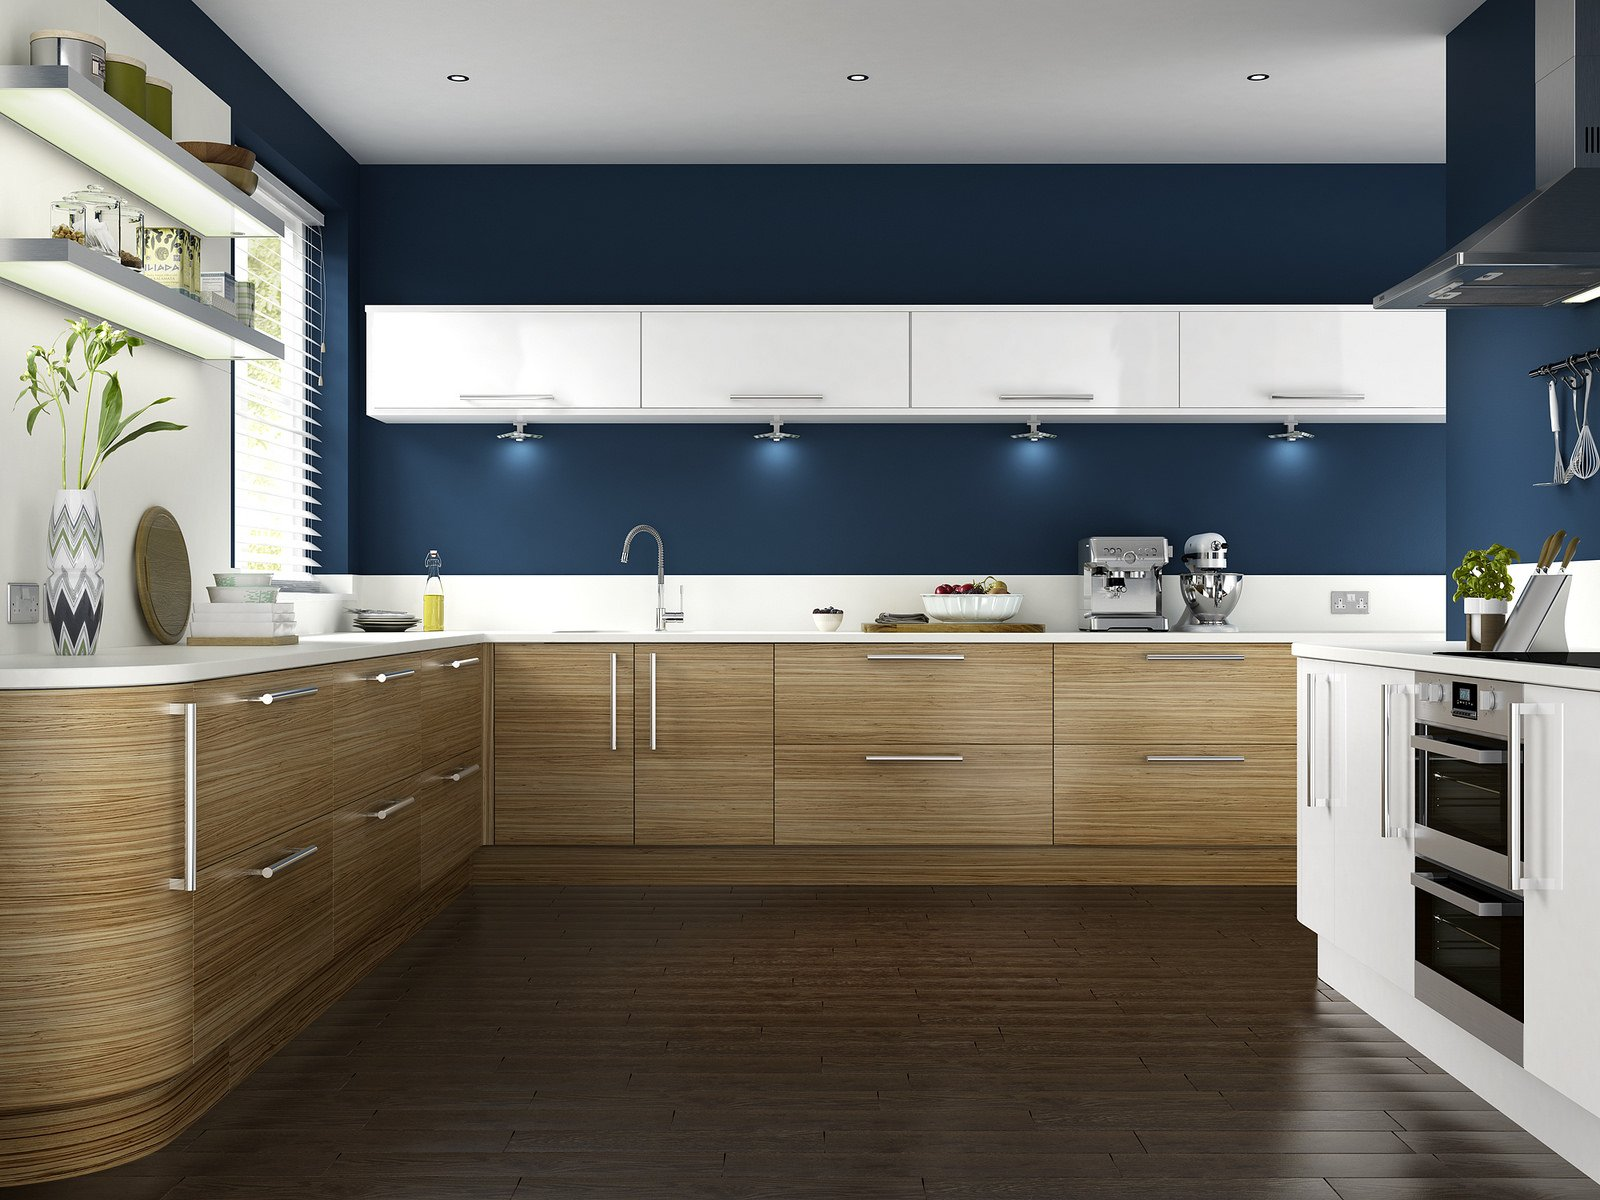 spruce up your kitchen dark vs bright colors